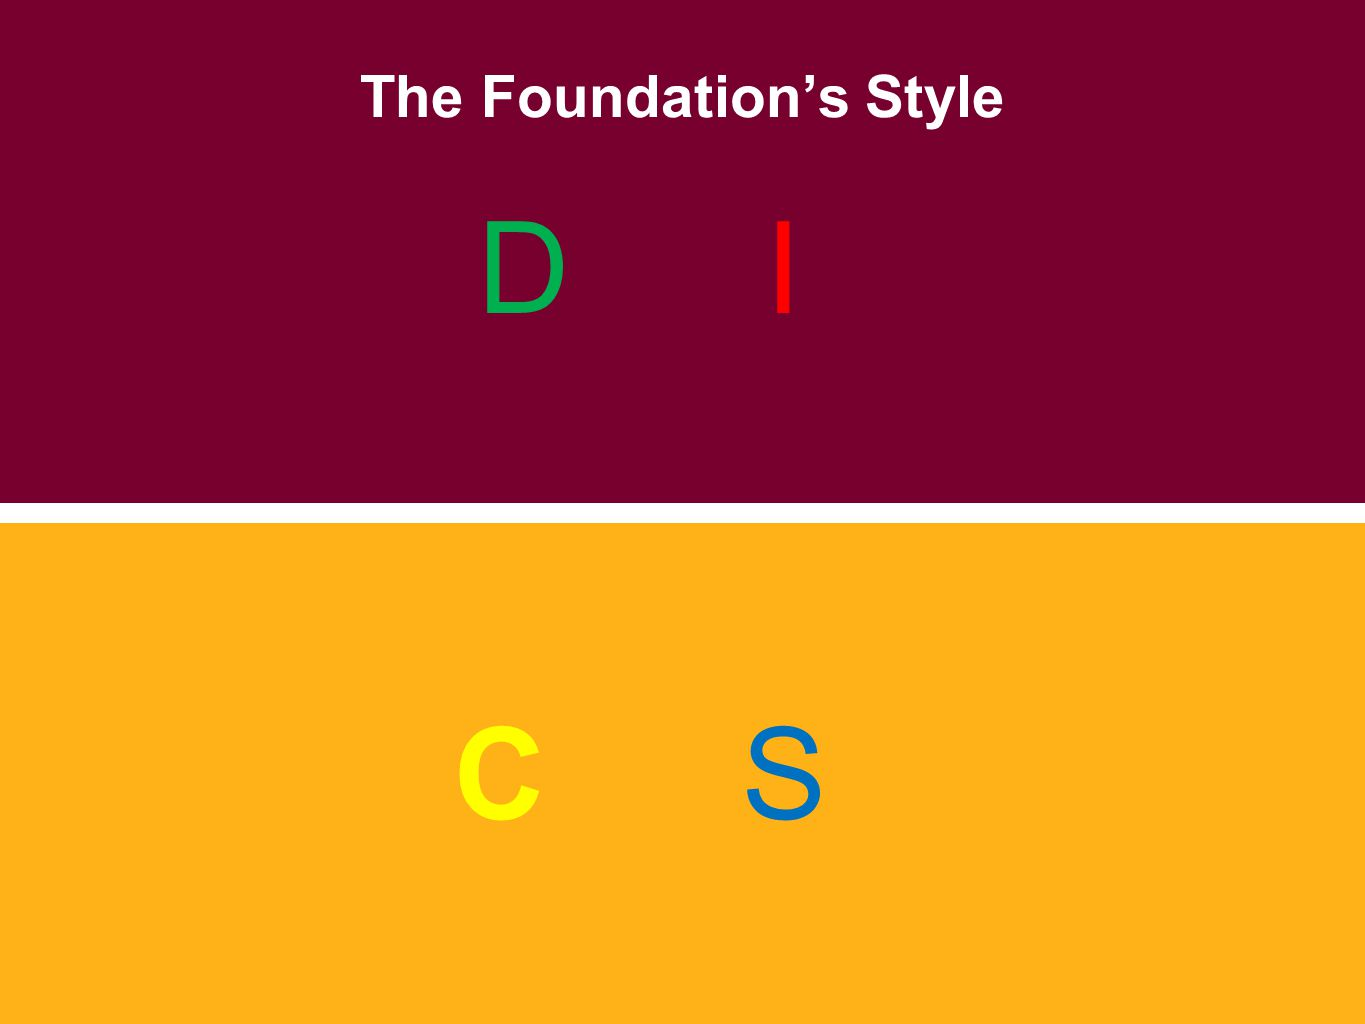 The Foundation's Style